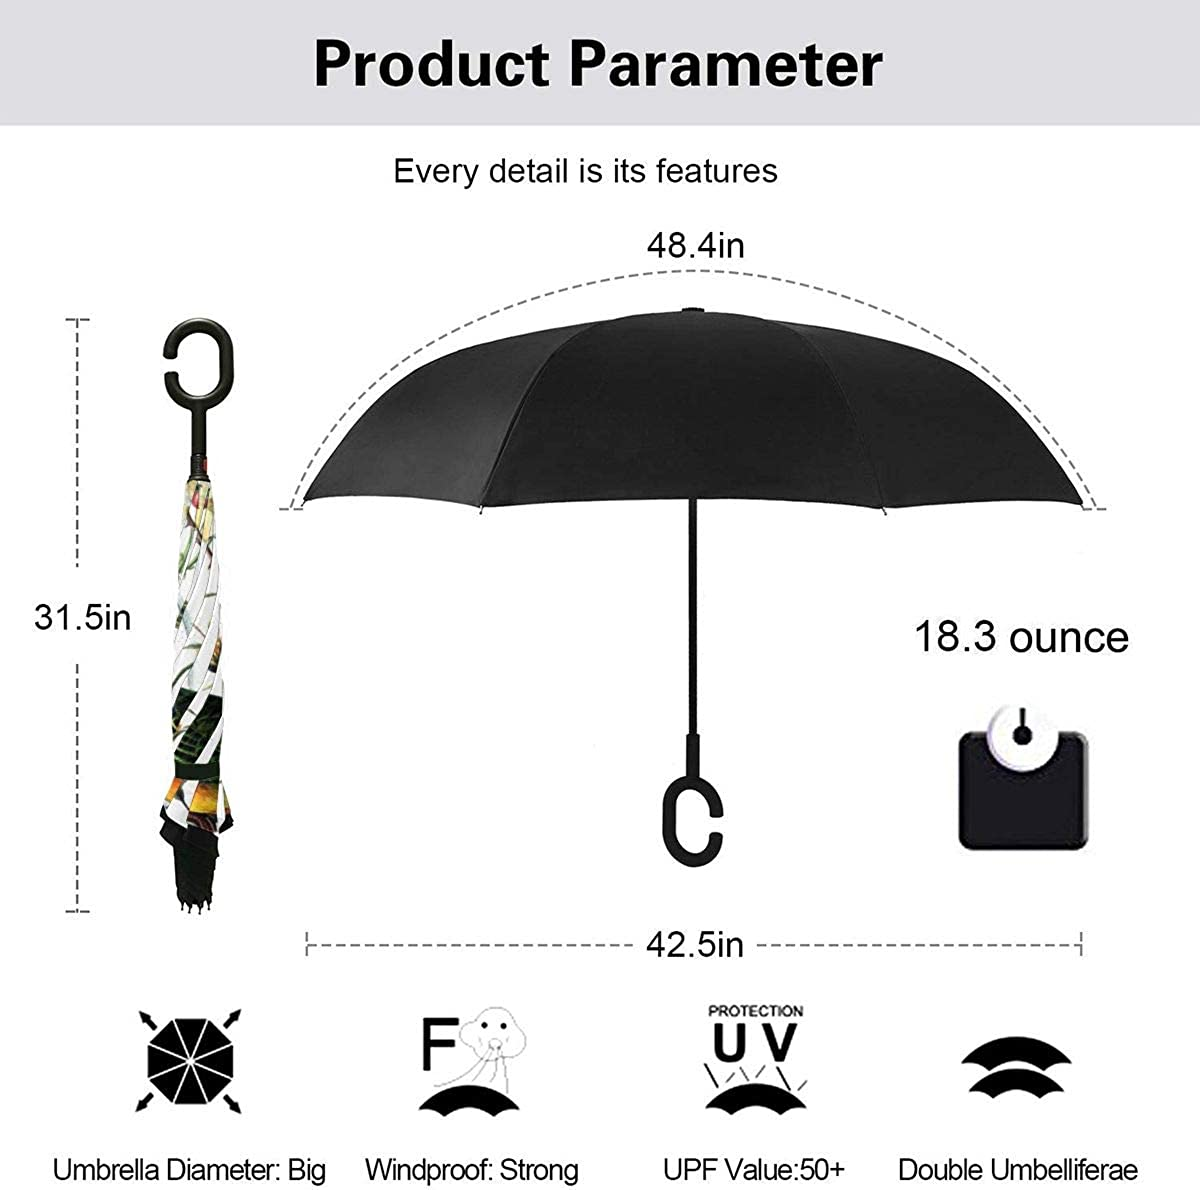 Reverse Umbrella Double Layer Inverted Umbrellas For Car Rain Outdoor With C-Shaped Handle Birds Vintage Flowers Background Customized